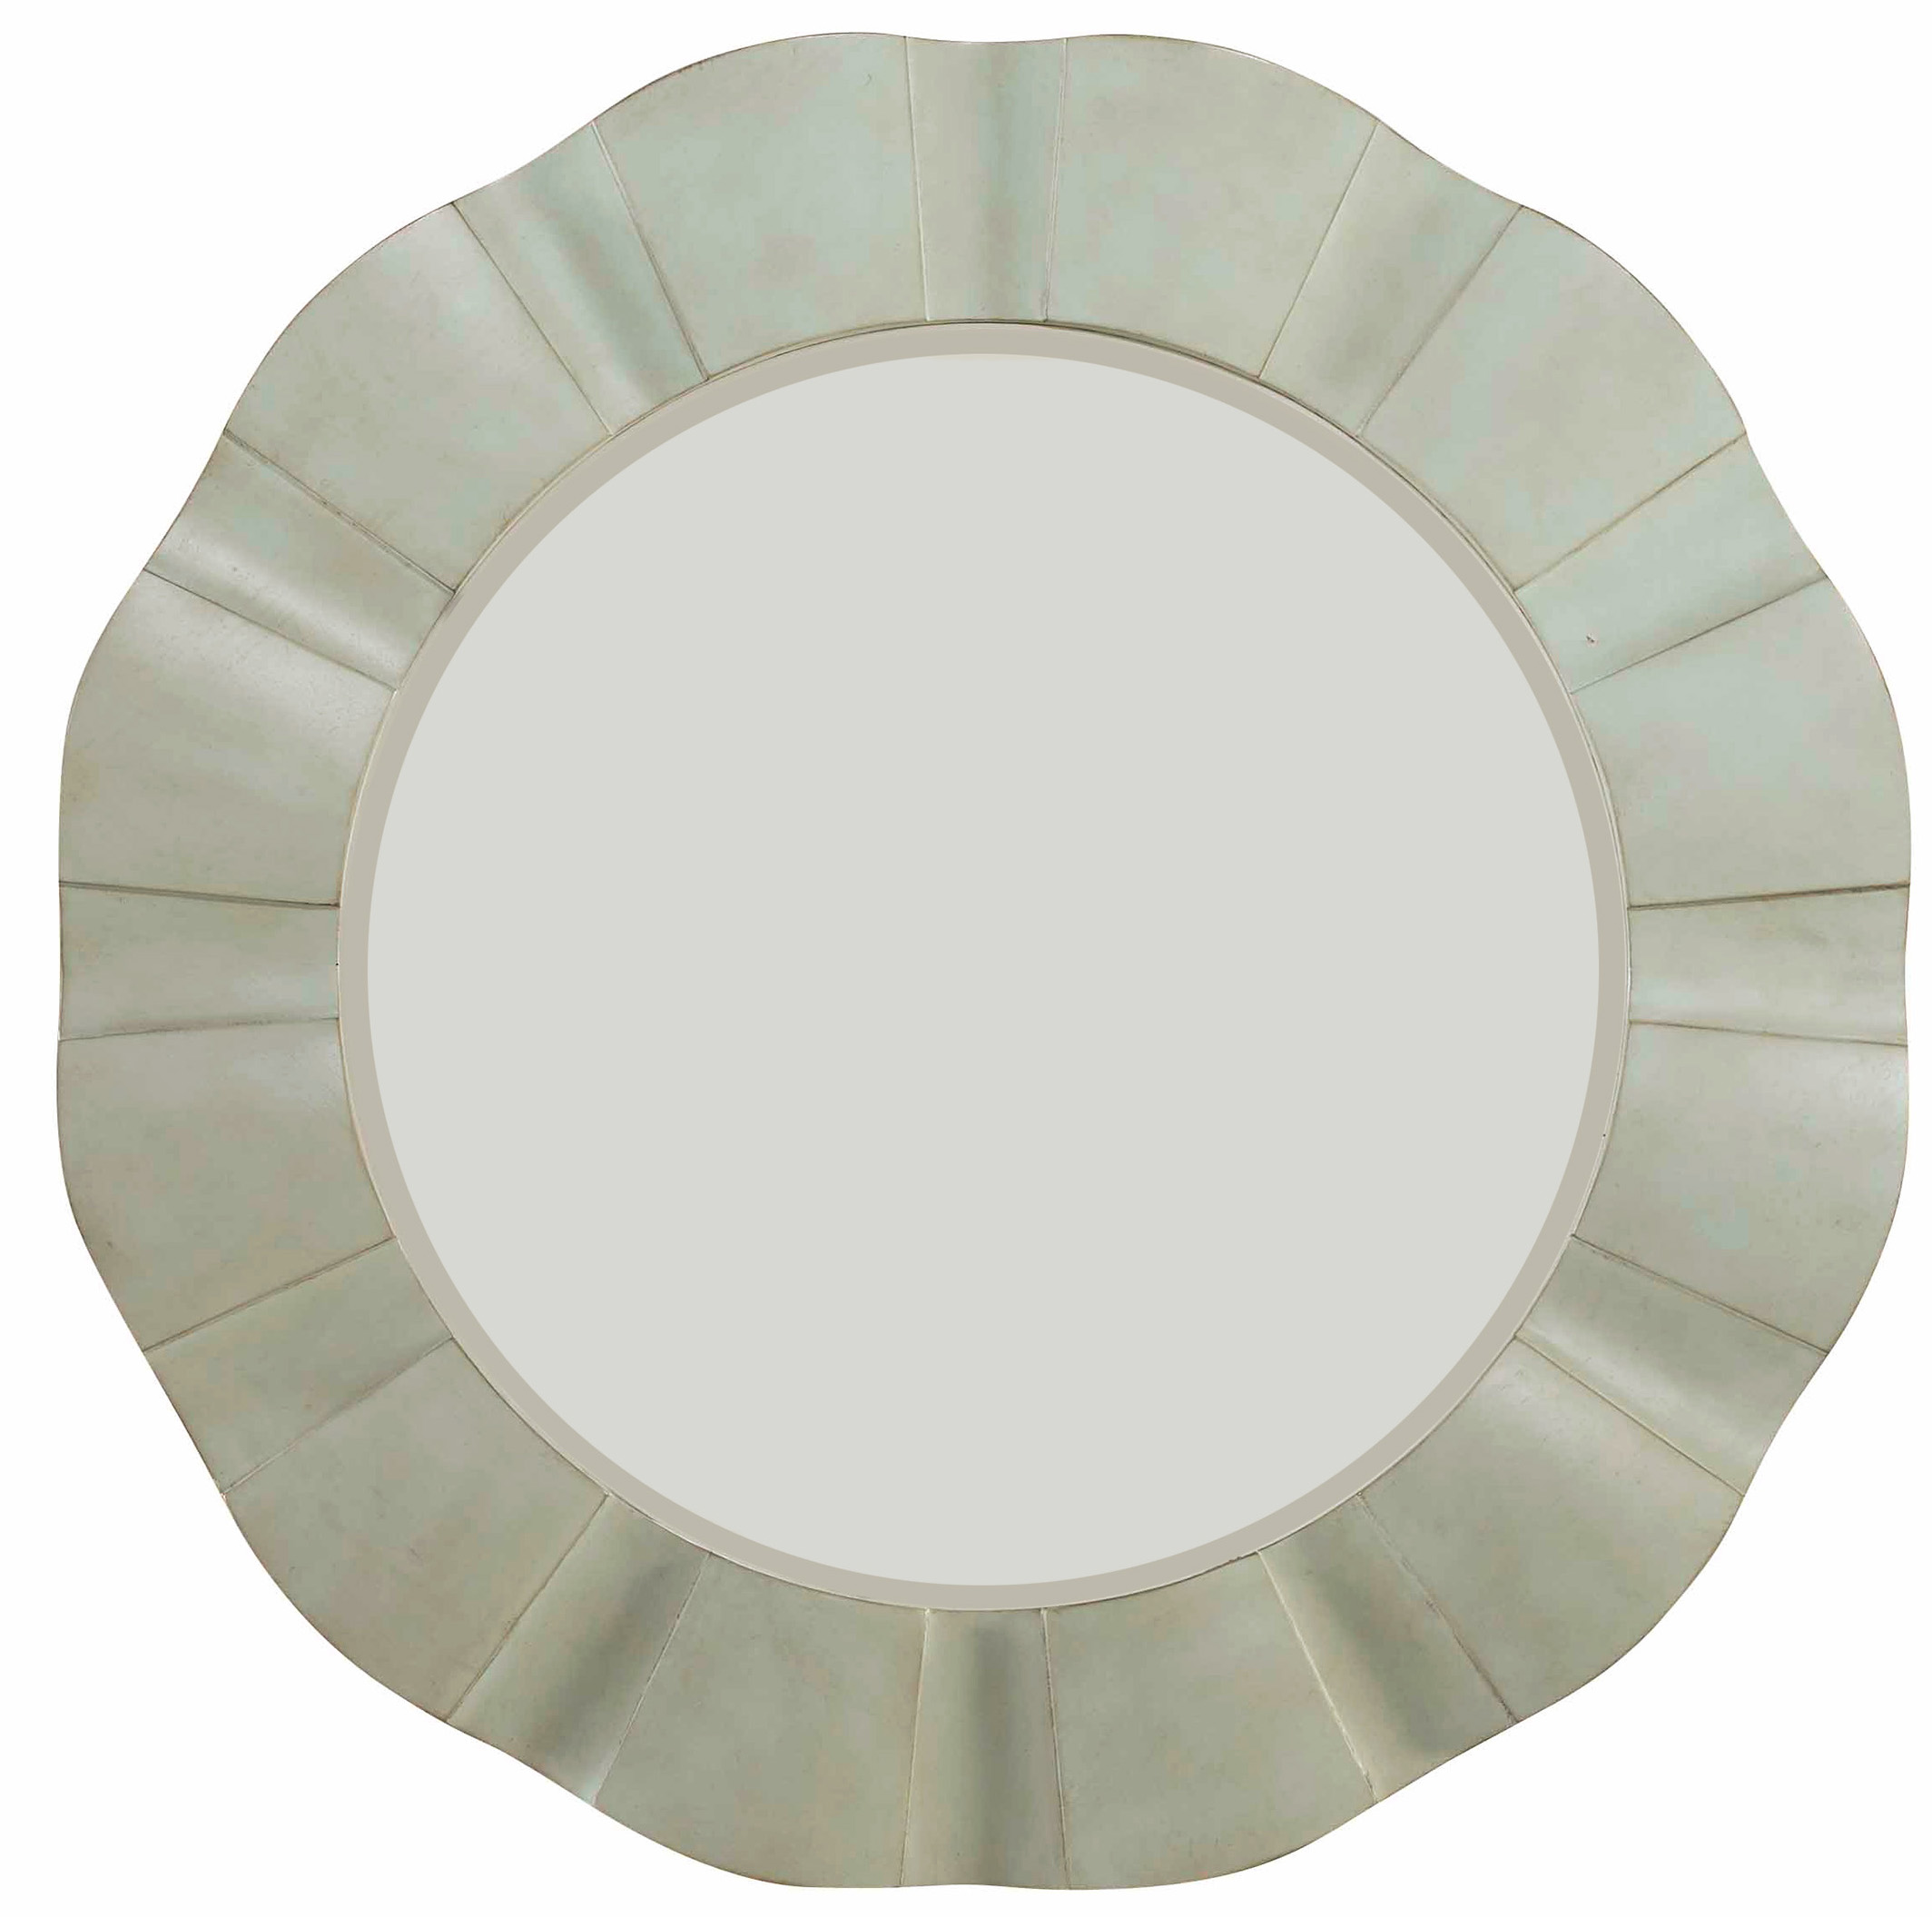 Hooker Furniture Sunset Point Round Wave Mirror - Item Number: 5326-50003